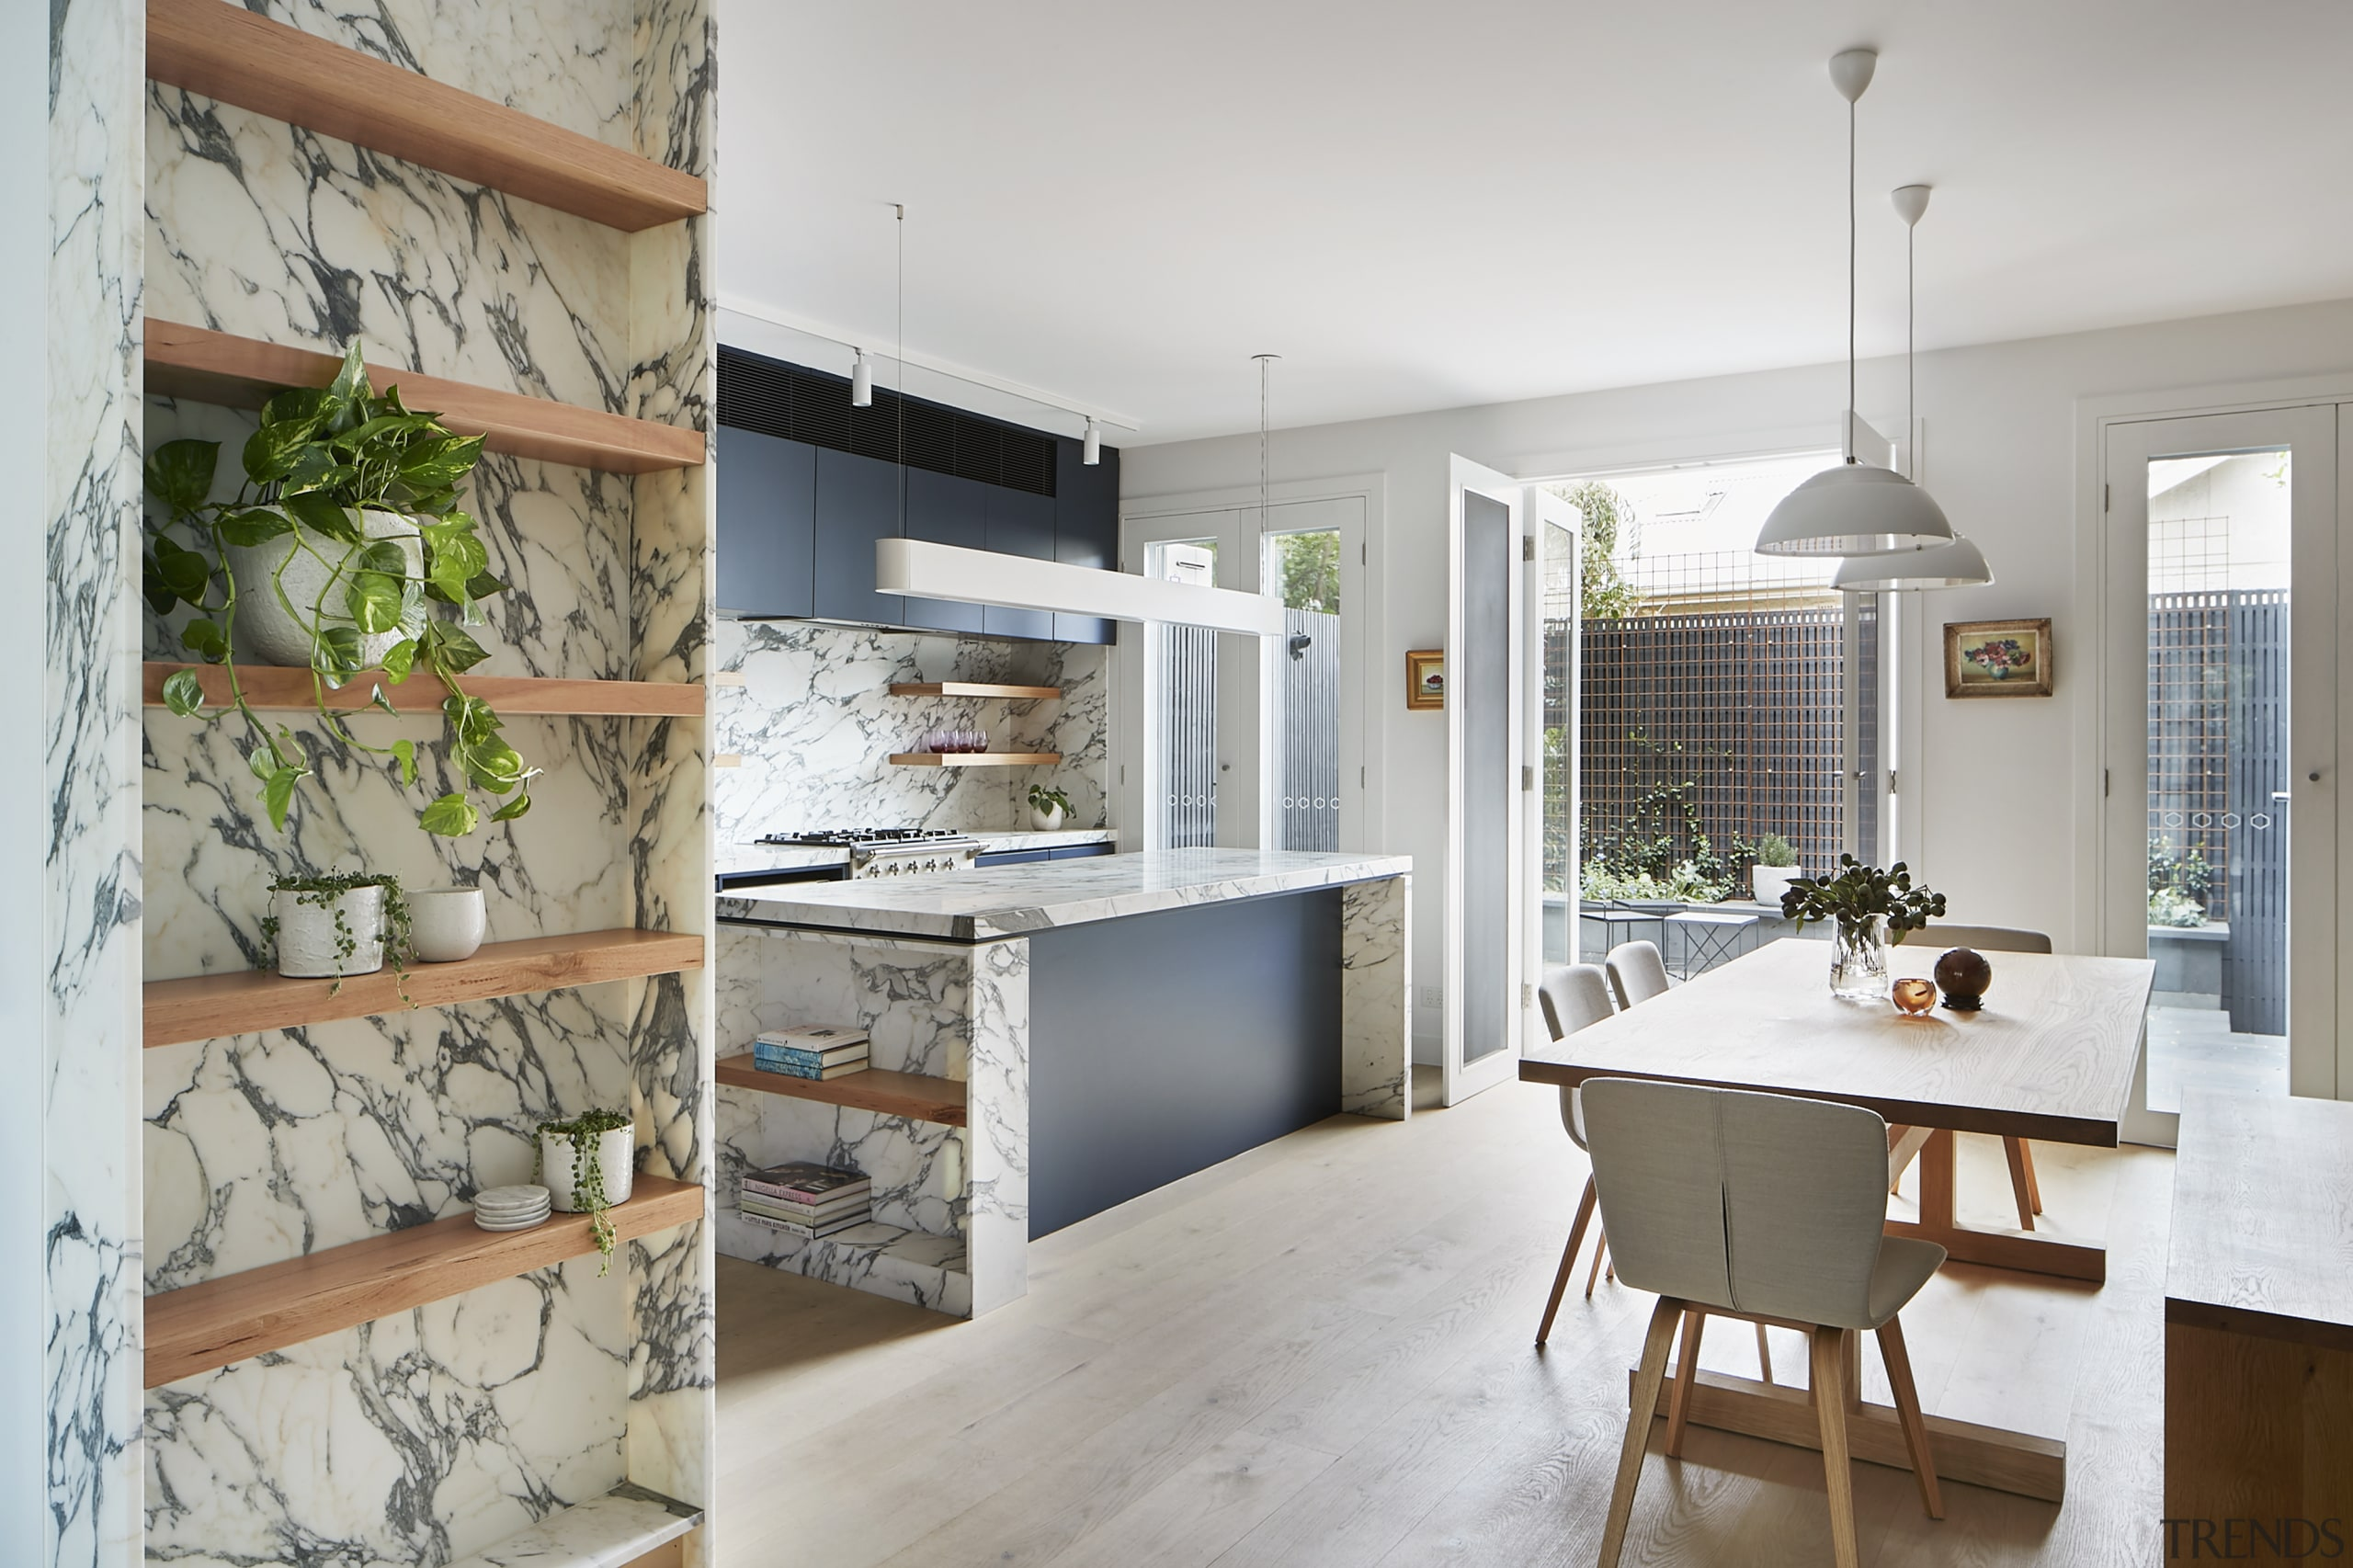 Rooms were merged and French doors with matching countertop, home, interior design, kitchen, Rob Nerlich, Mcmahon and Nerlich, grey cabinetry, Marble benchtop, countertop